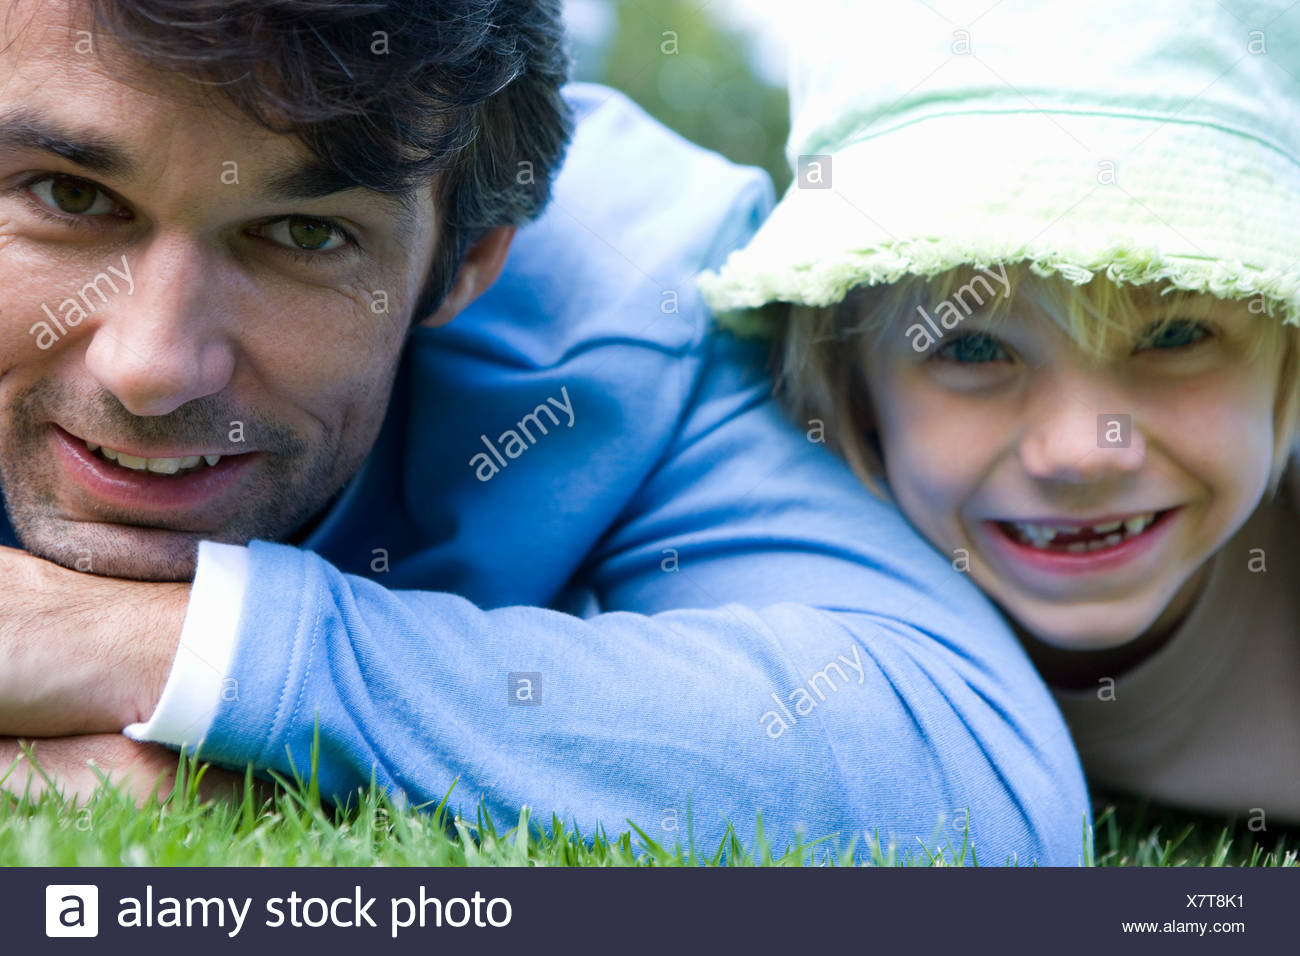 Father and daughter  lying on stomachs on grass, smiling, portrait, close-up - Stock Image